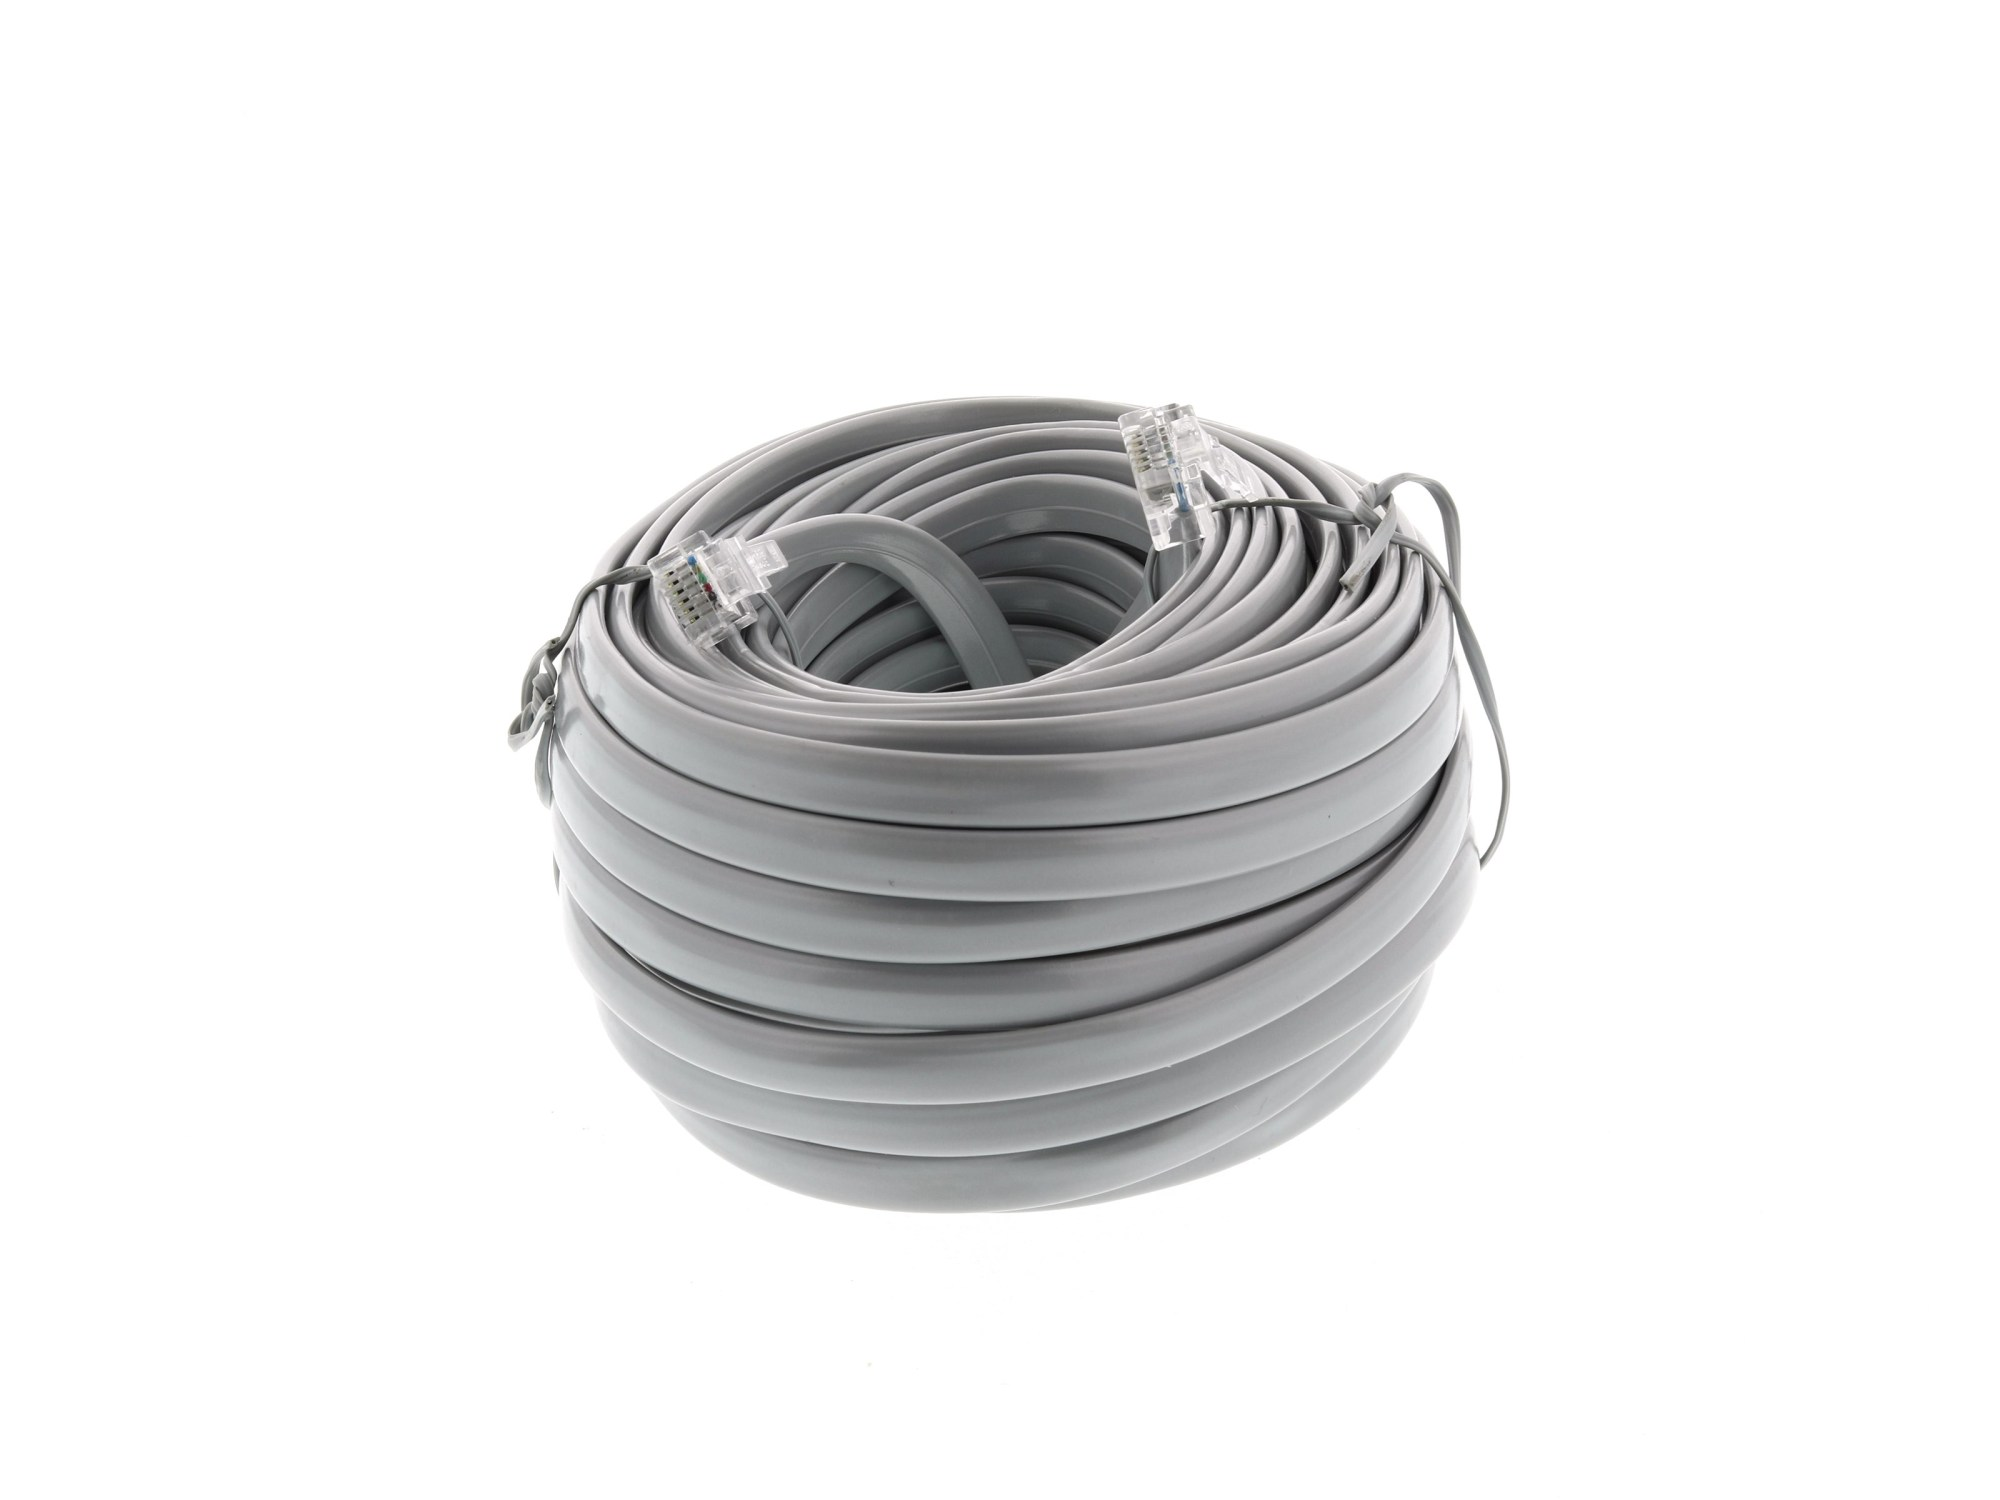 hight resolution of  picture of rj12 6 conductor cross wired modular telephone cable 50 ft